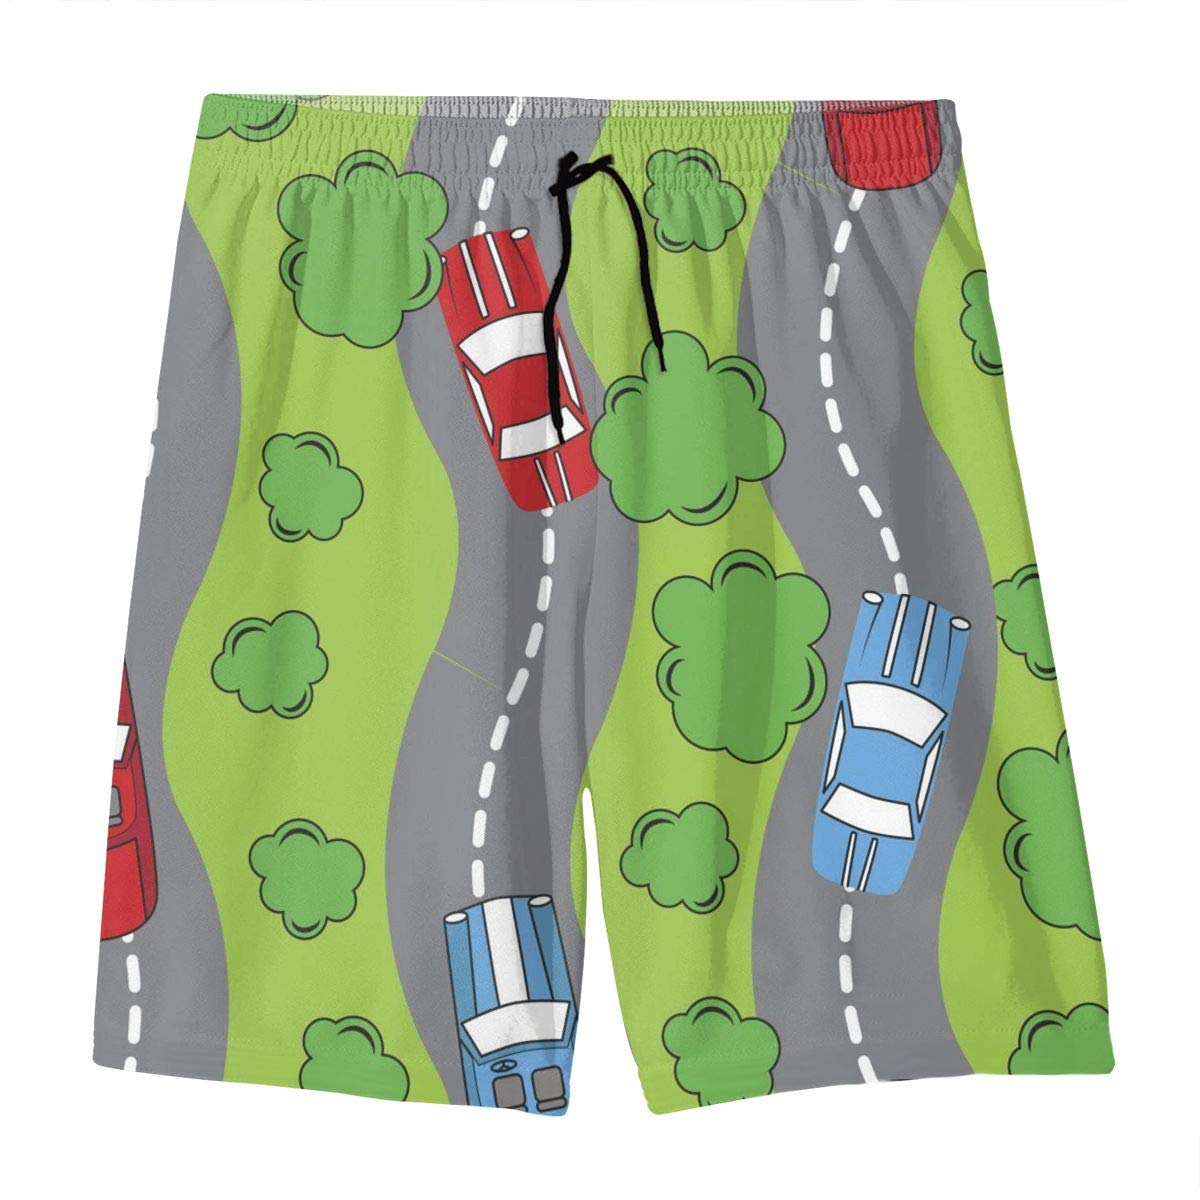 Mens Swim Trunks Green Patter with Cars Printed Beach Board Shorts with Pockets Cool Novelty Bathing Suits for Teen Boys